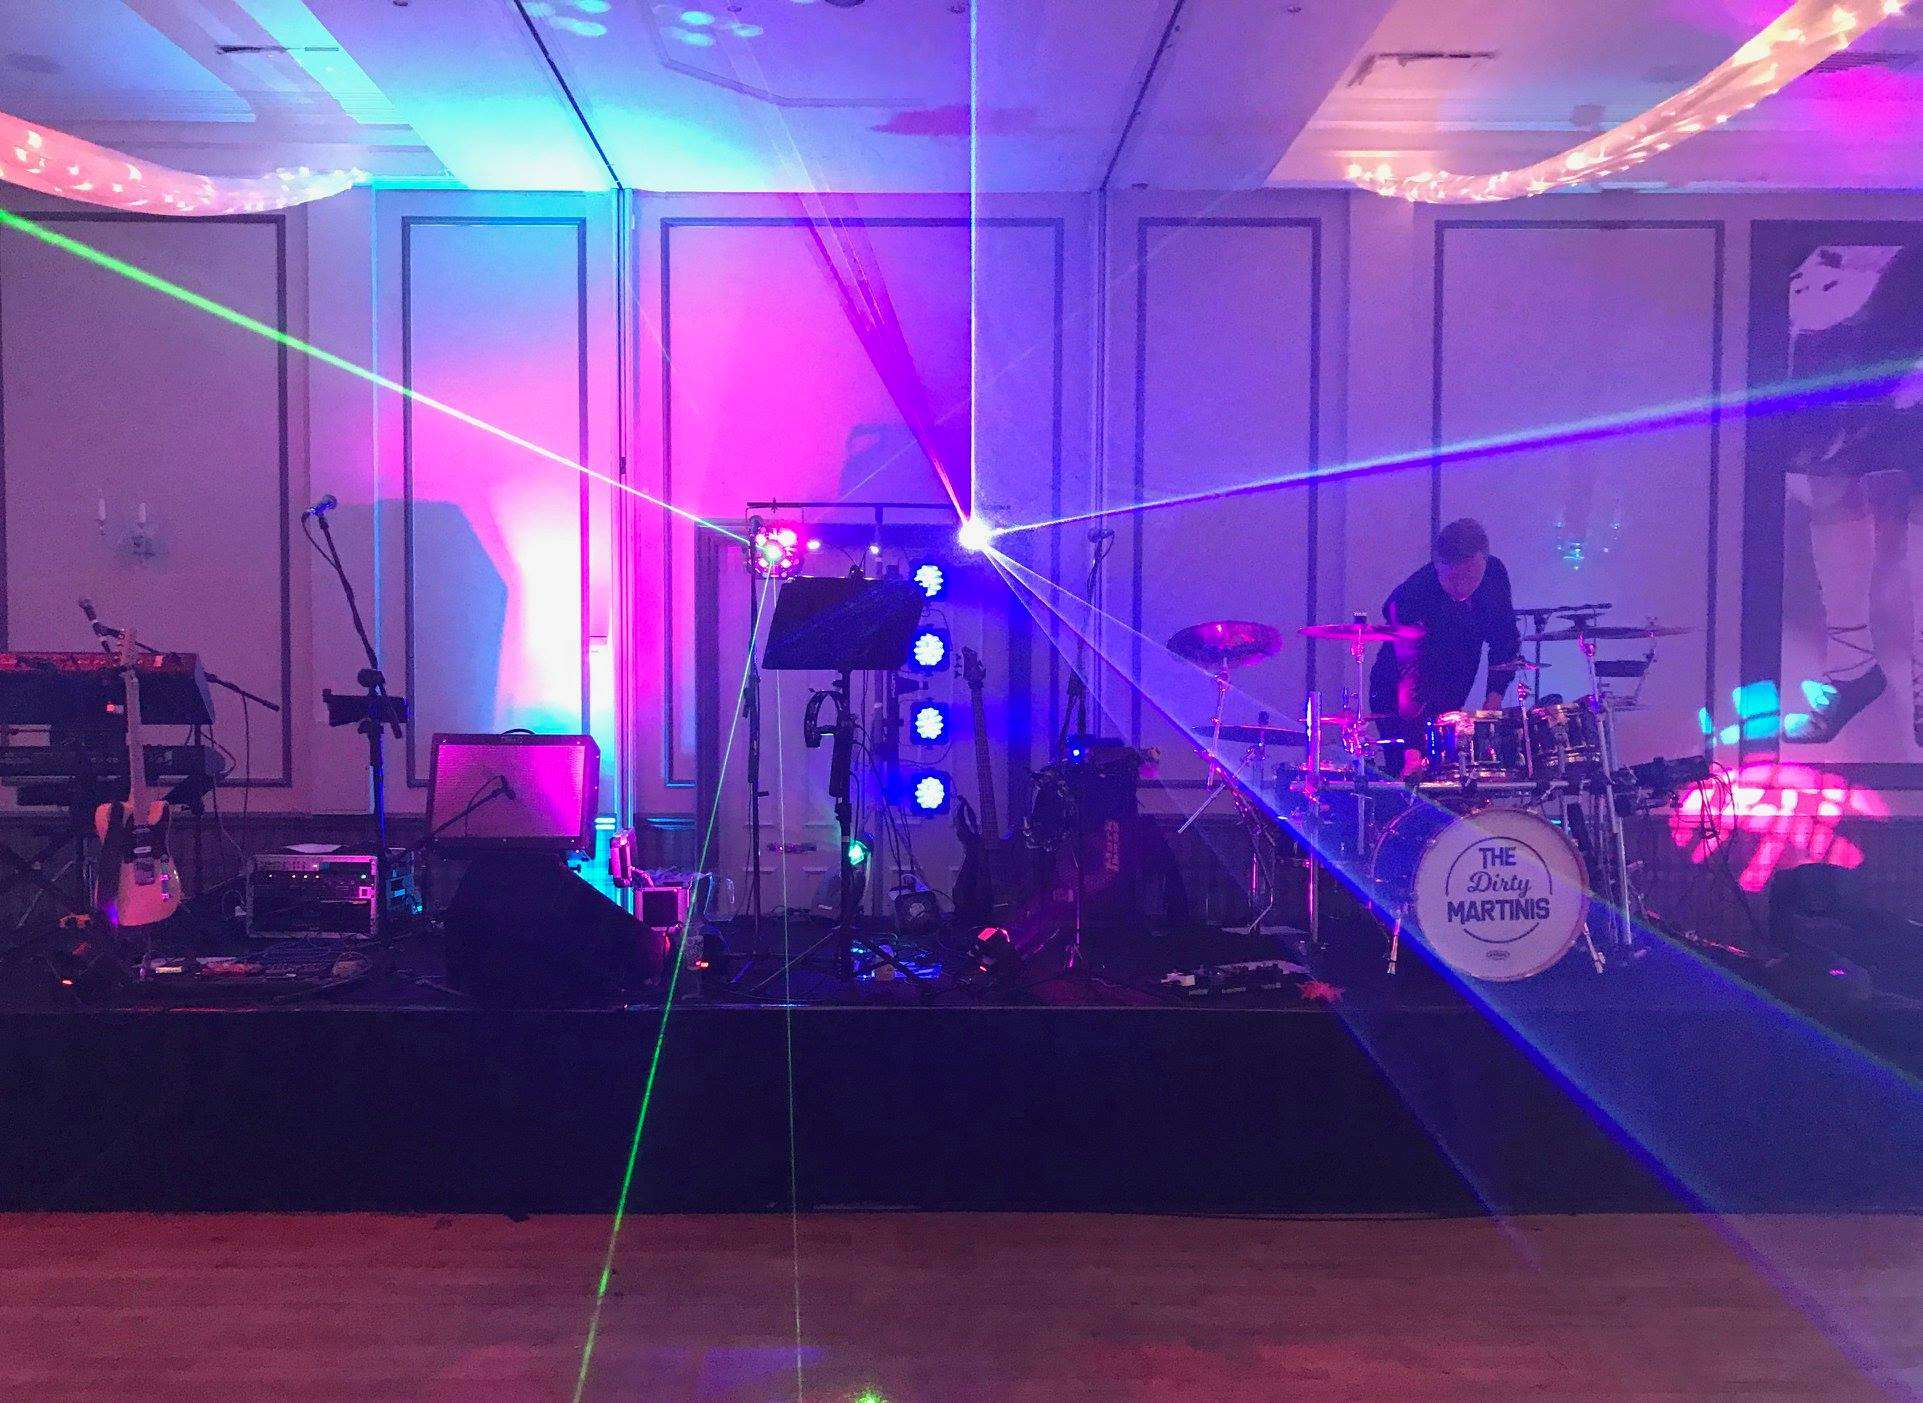 The Dirty Matinis Lighting Rig